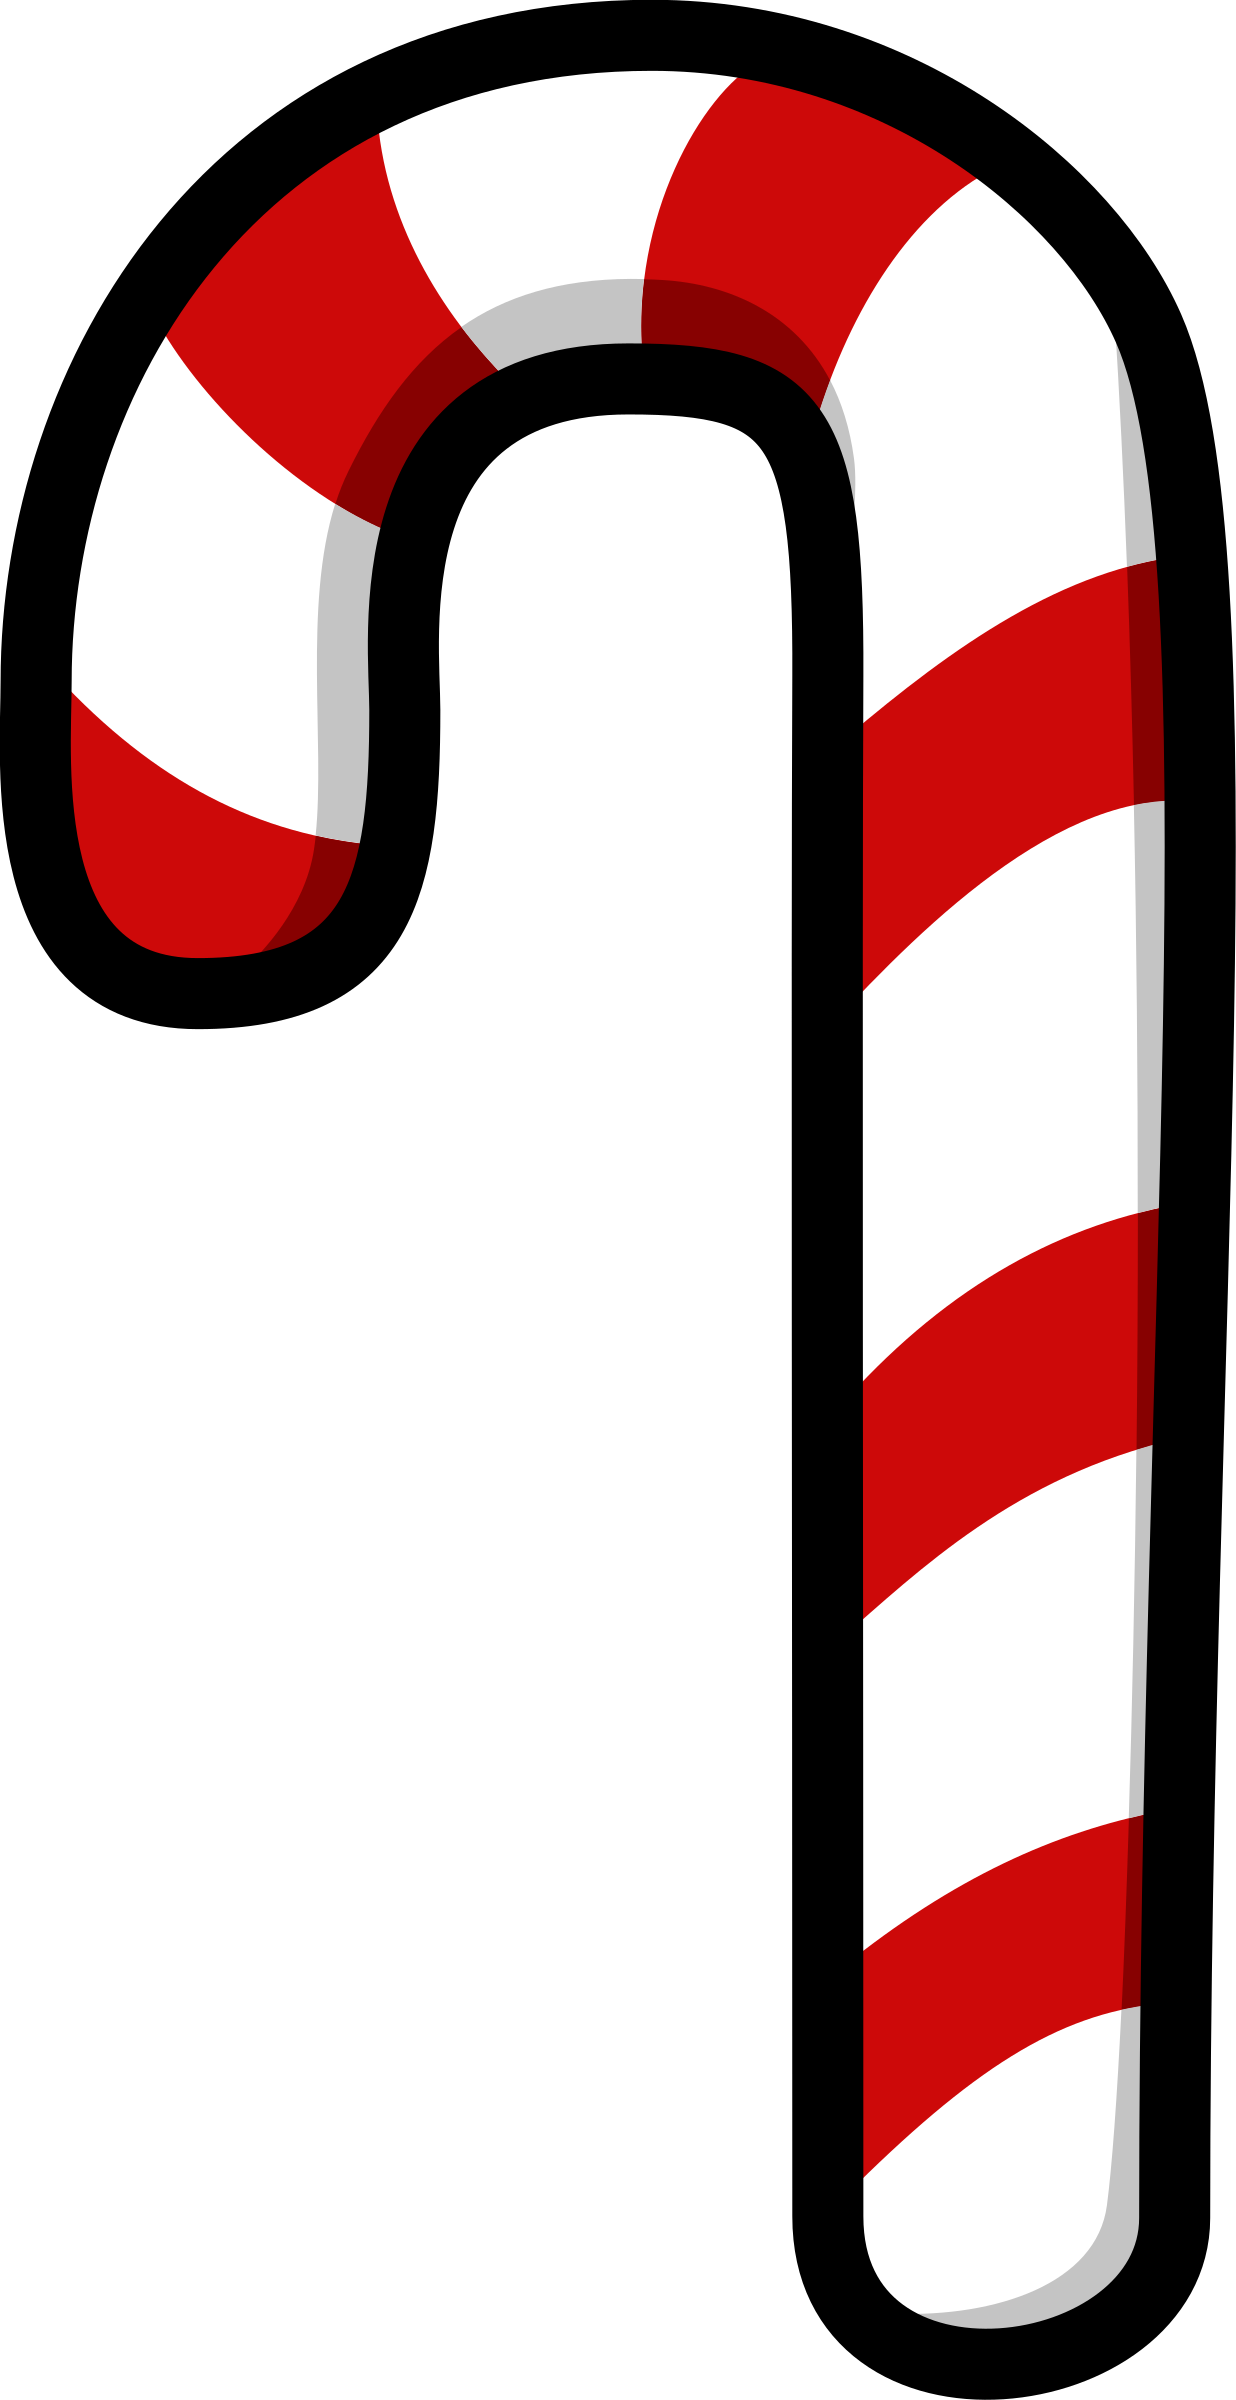 clip art royalty free library Marbles clipart 4 candy. Cane.